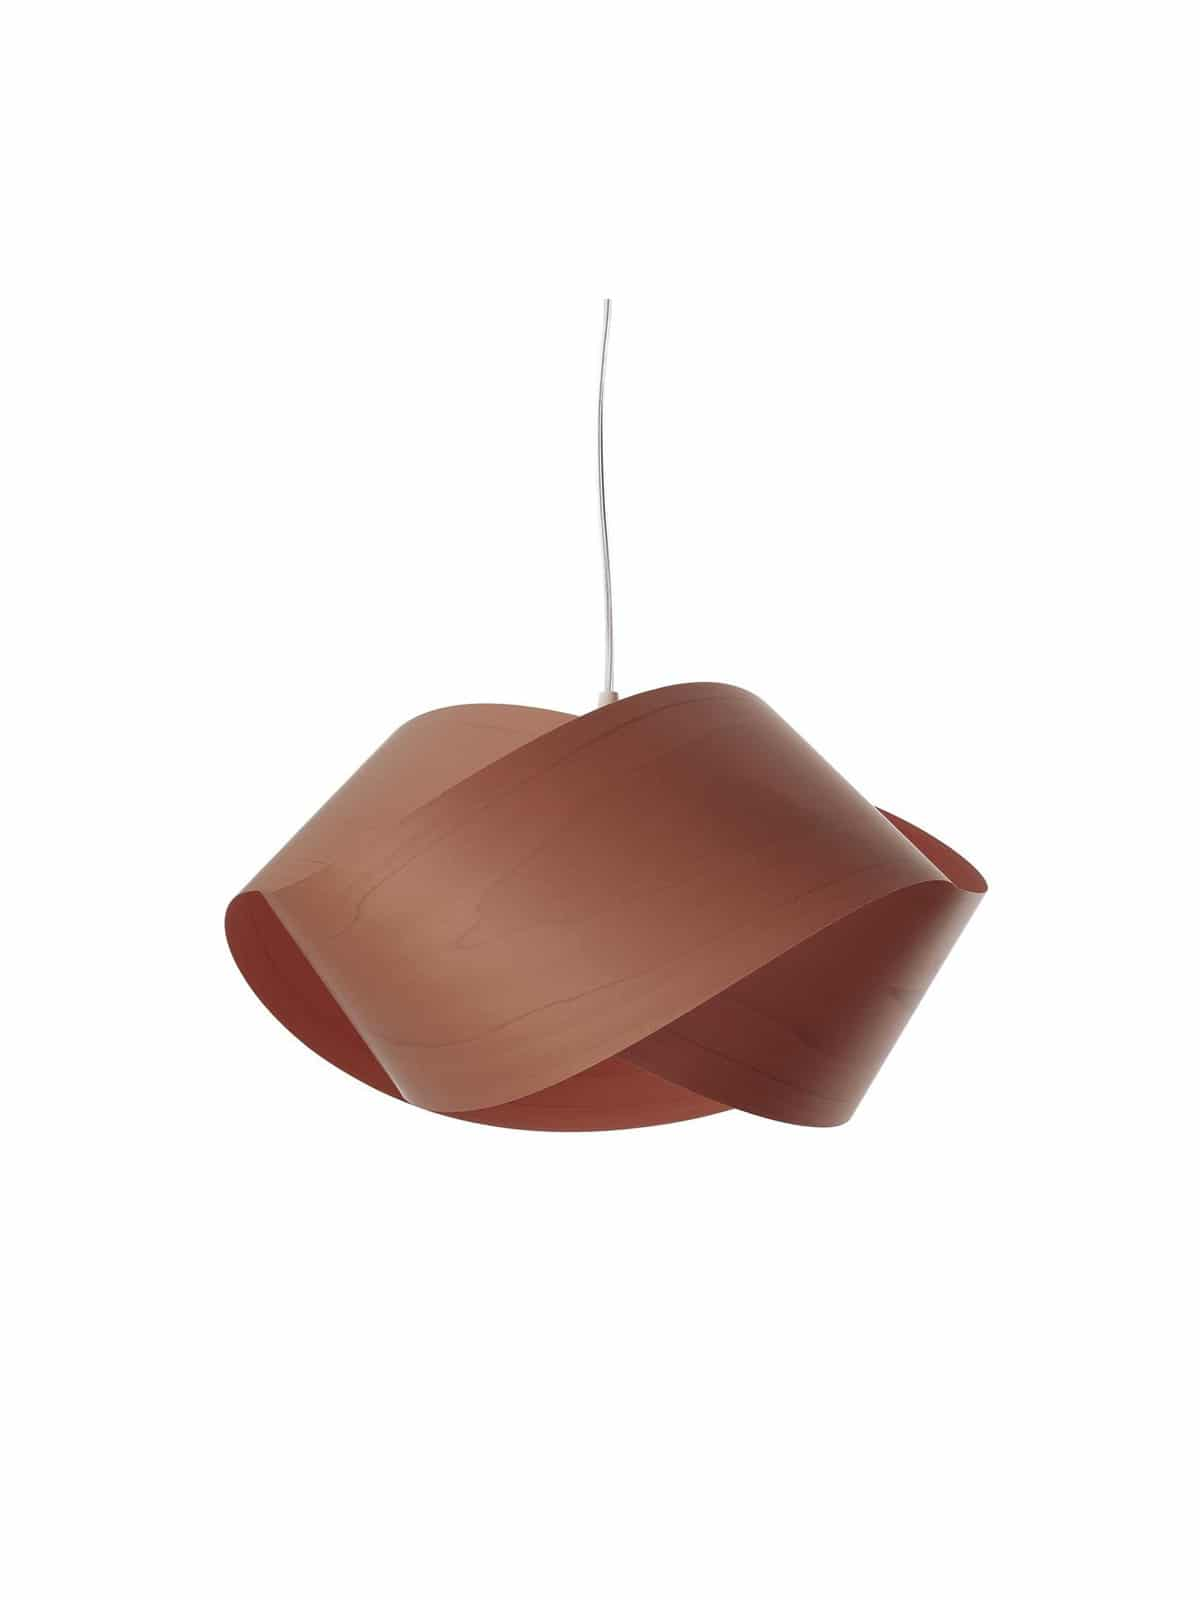 Holz Lampe Nut in choco